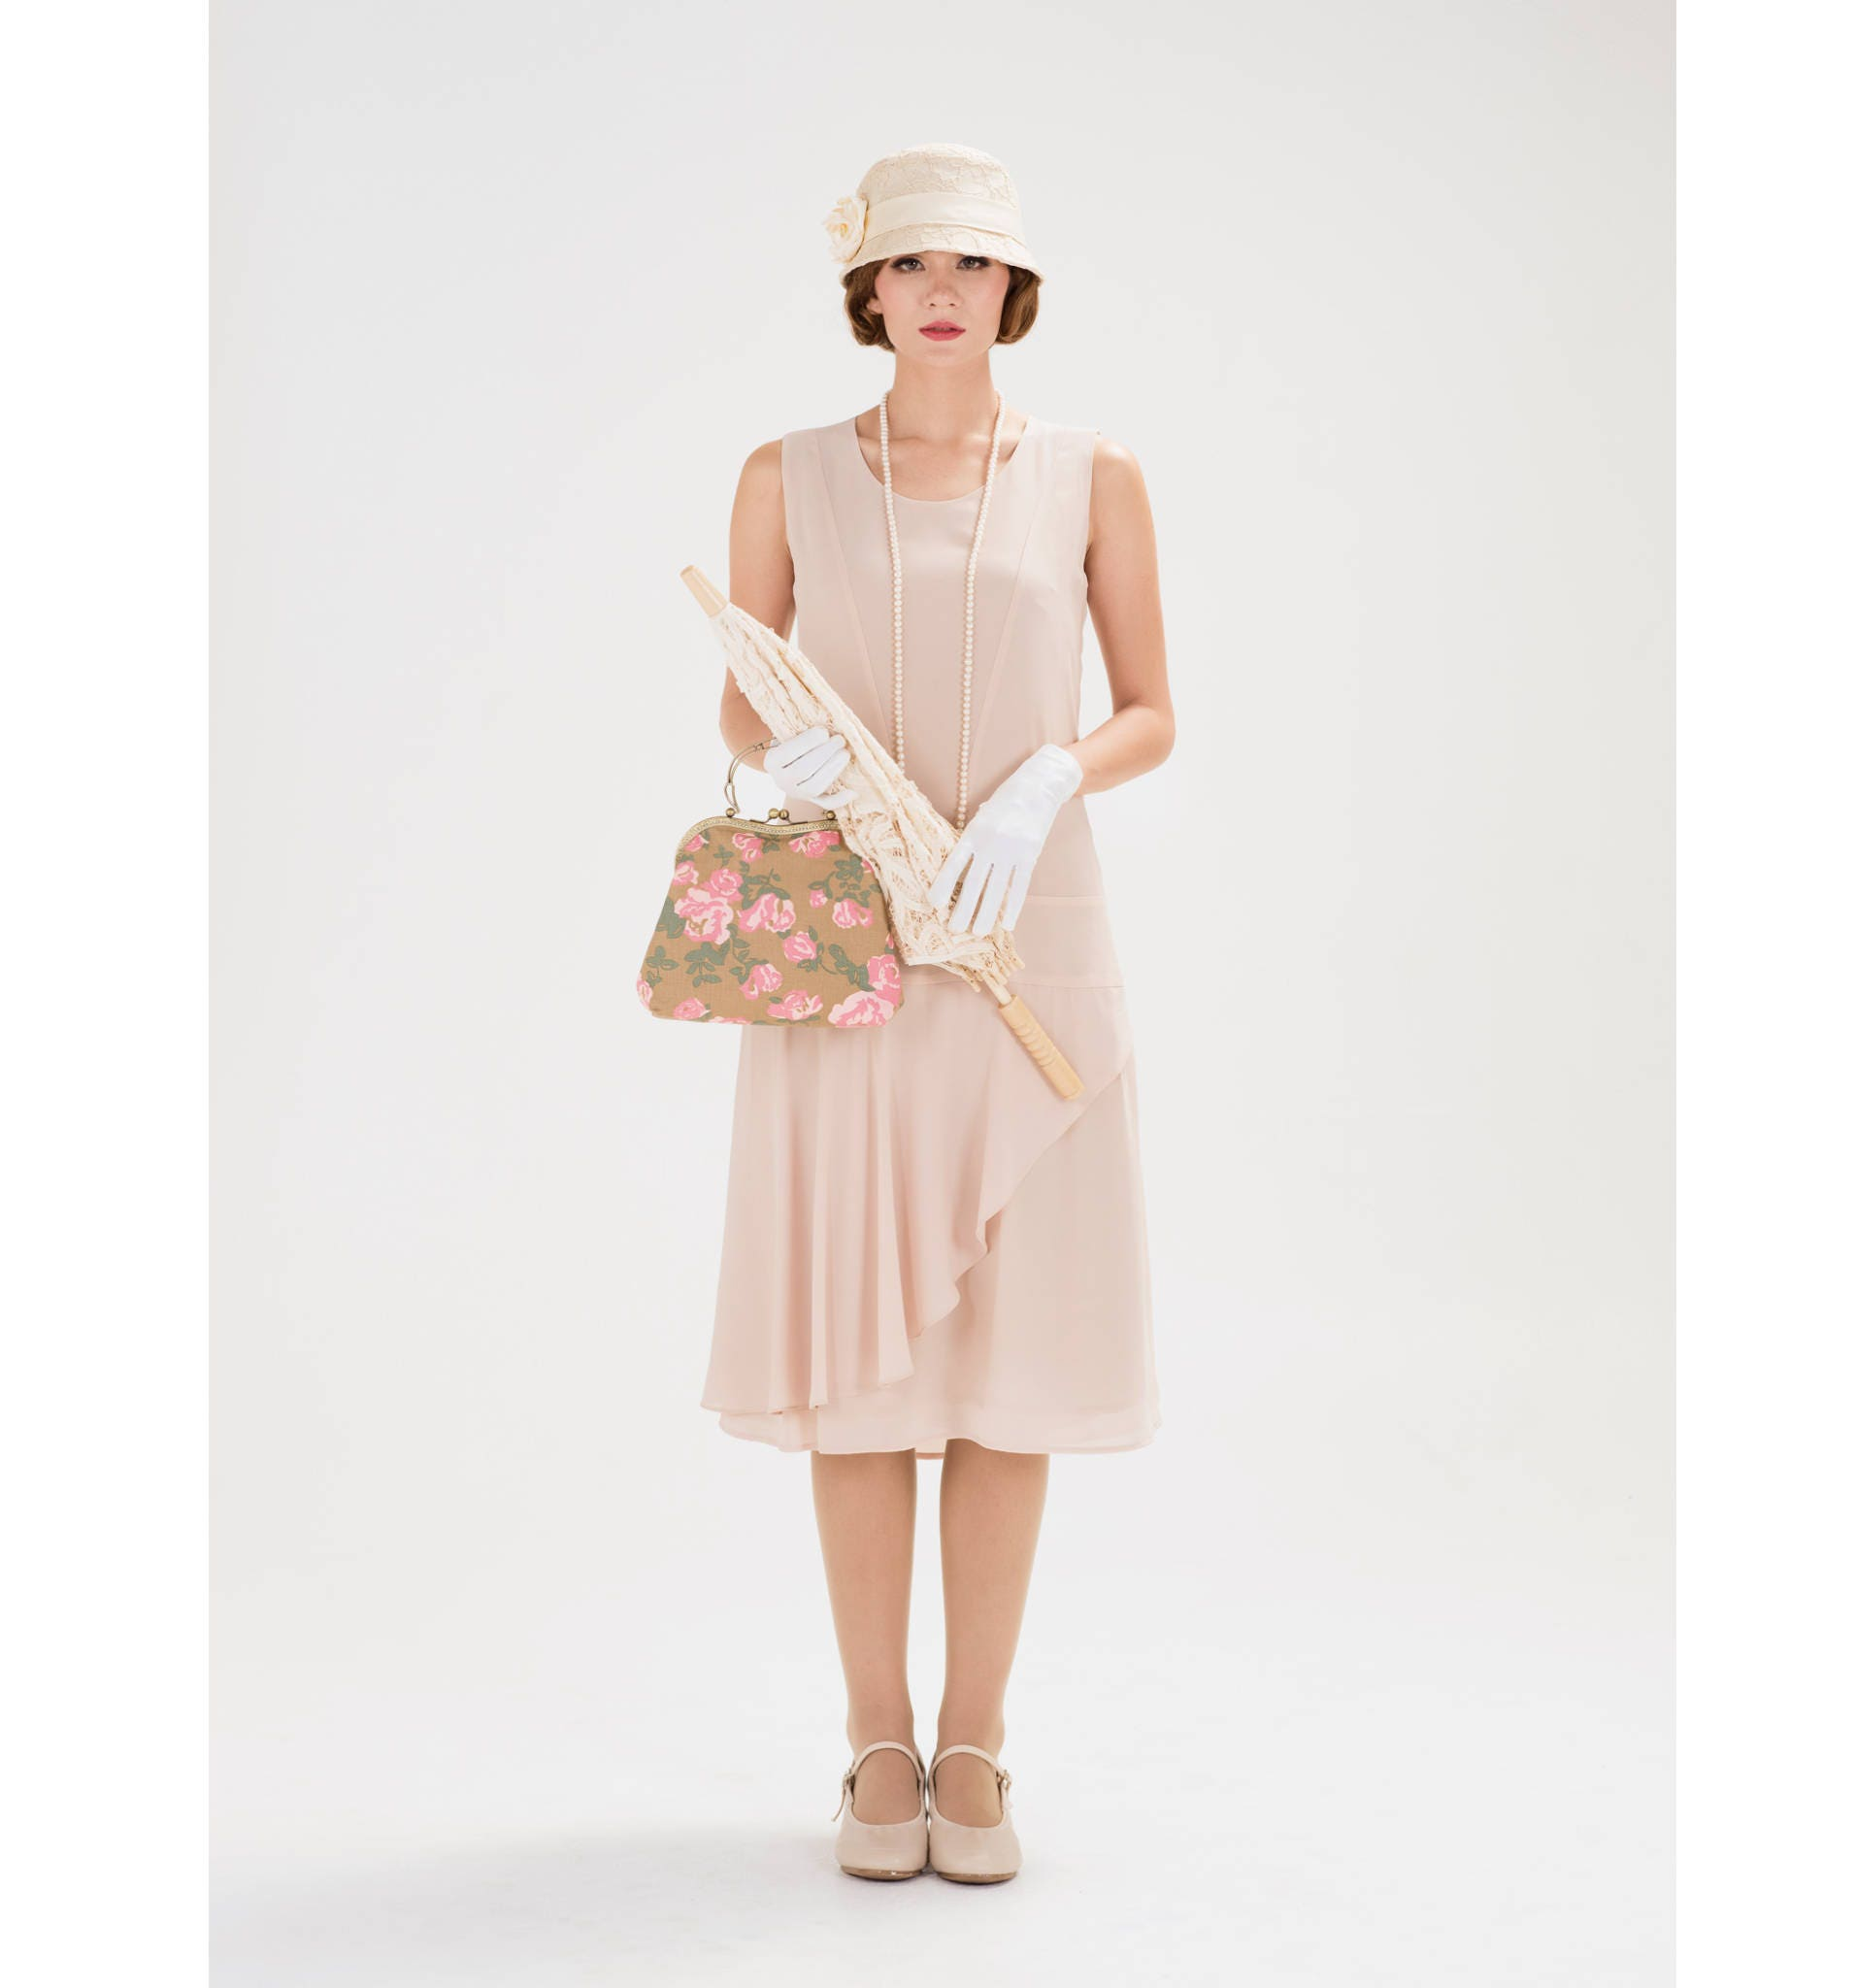 Nude jazz age flapper dress with a ruffled skirt detail ...